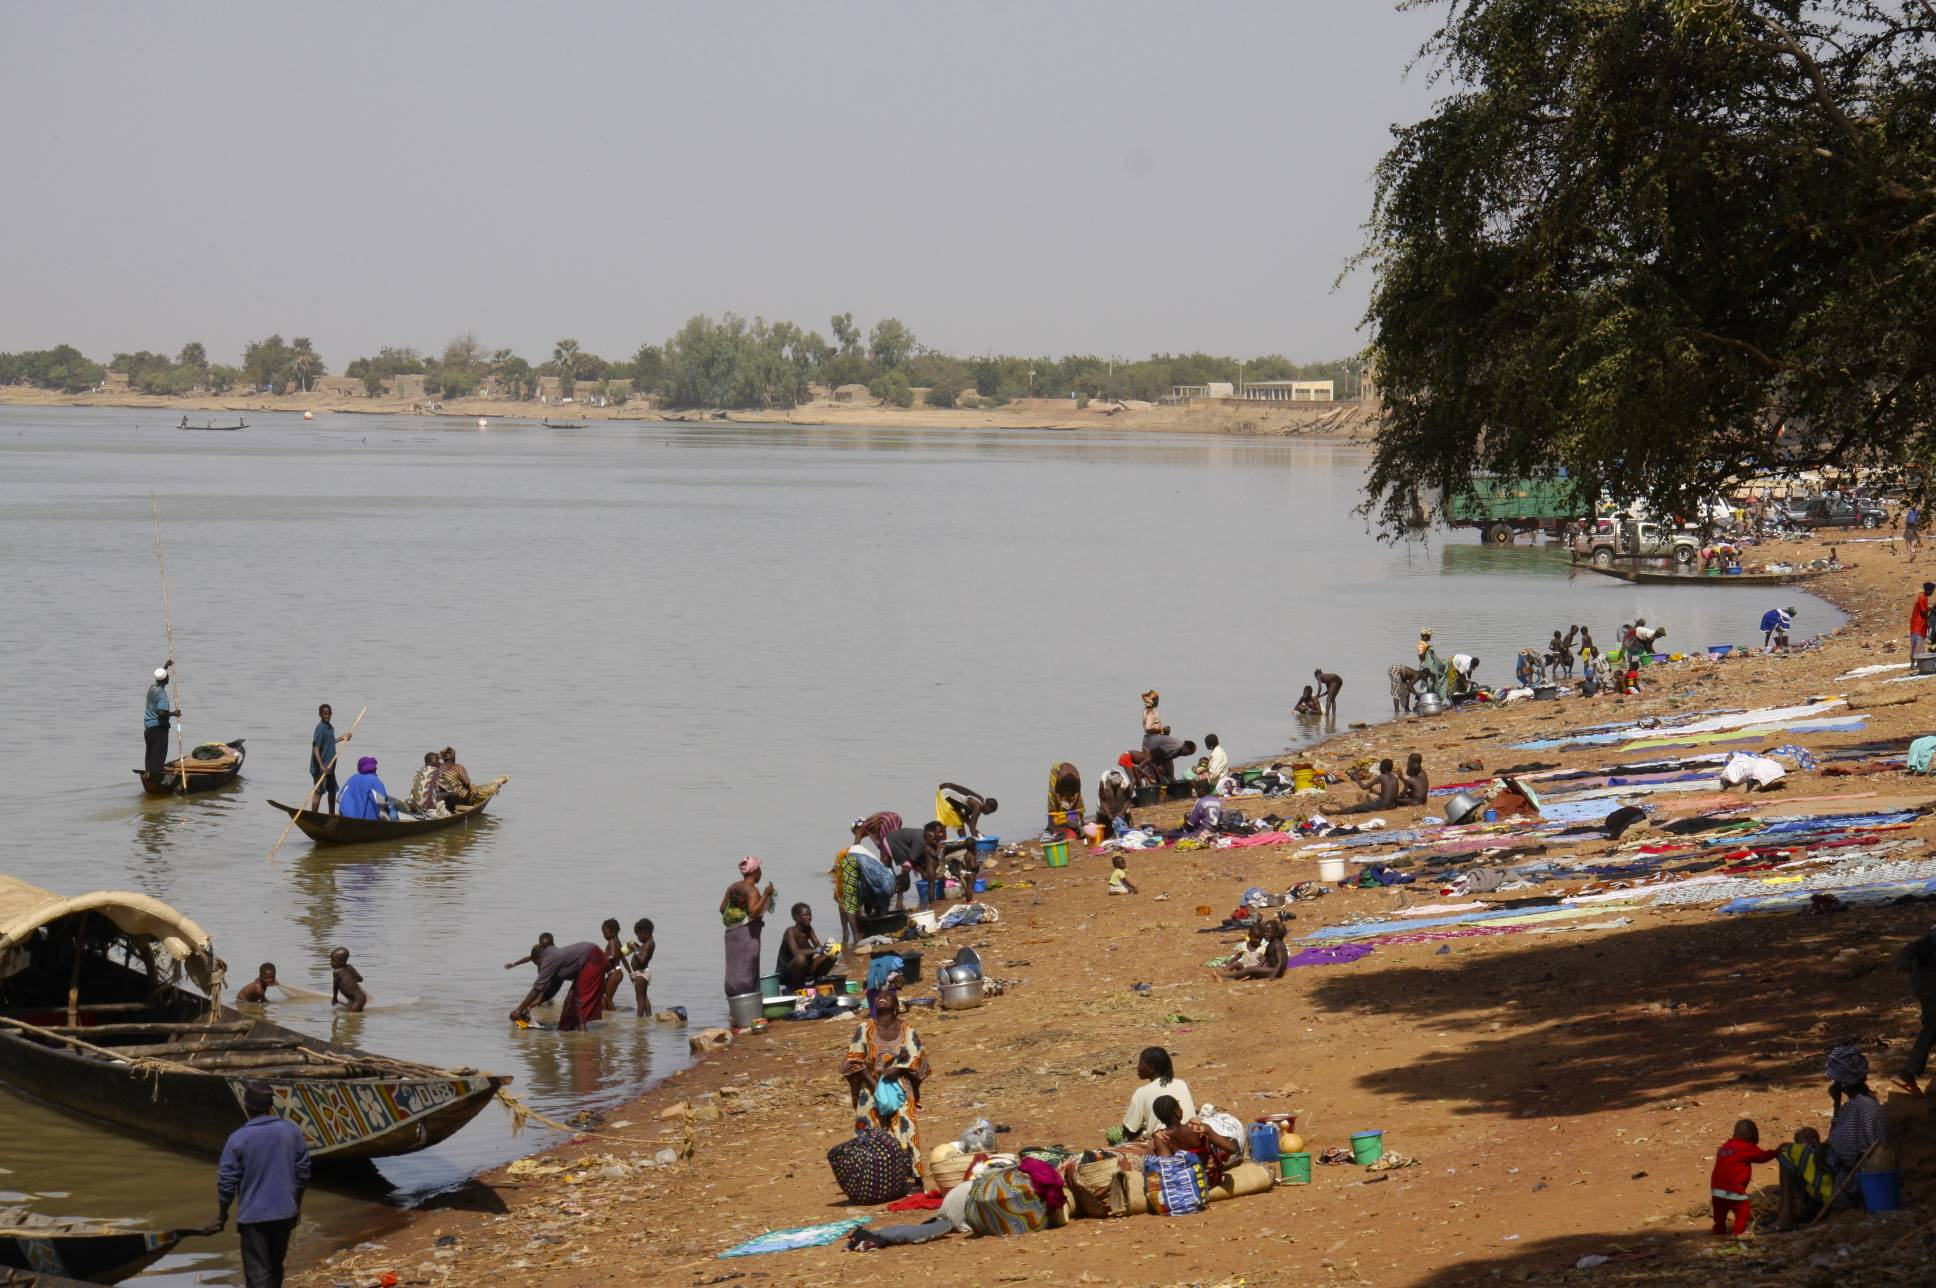 Niger River | notesfromcamelidcountry